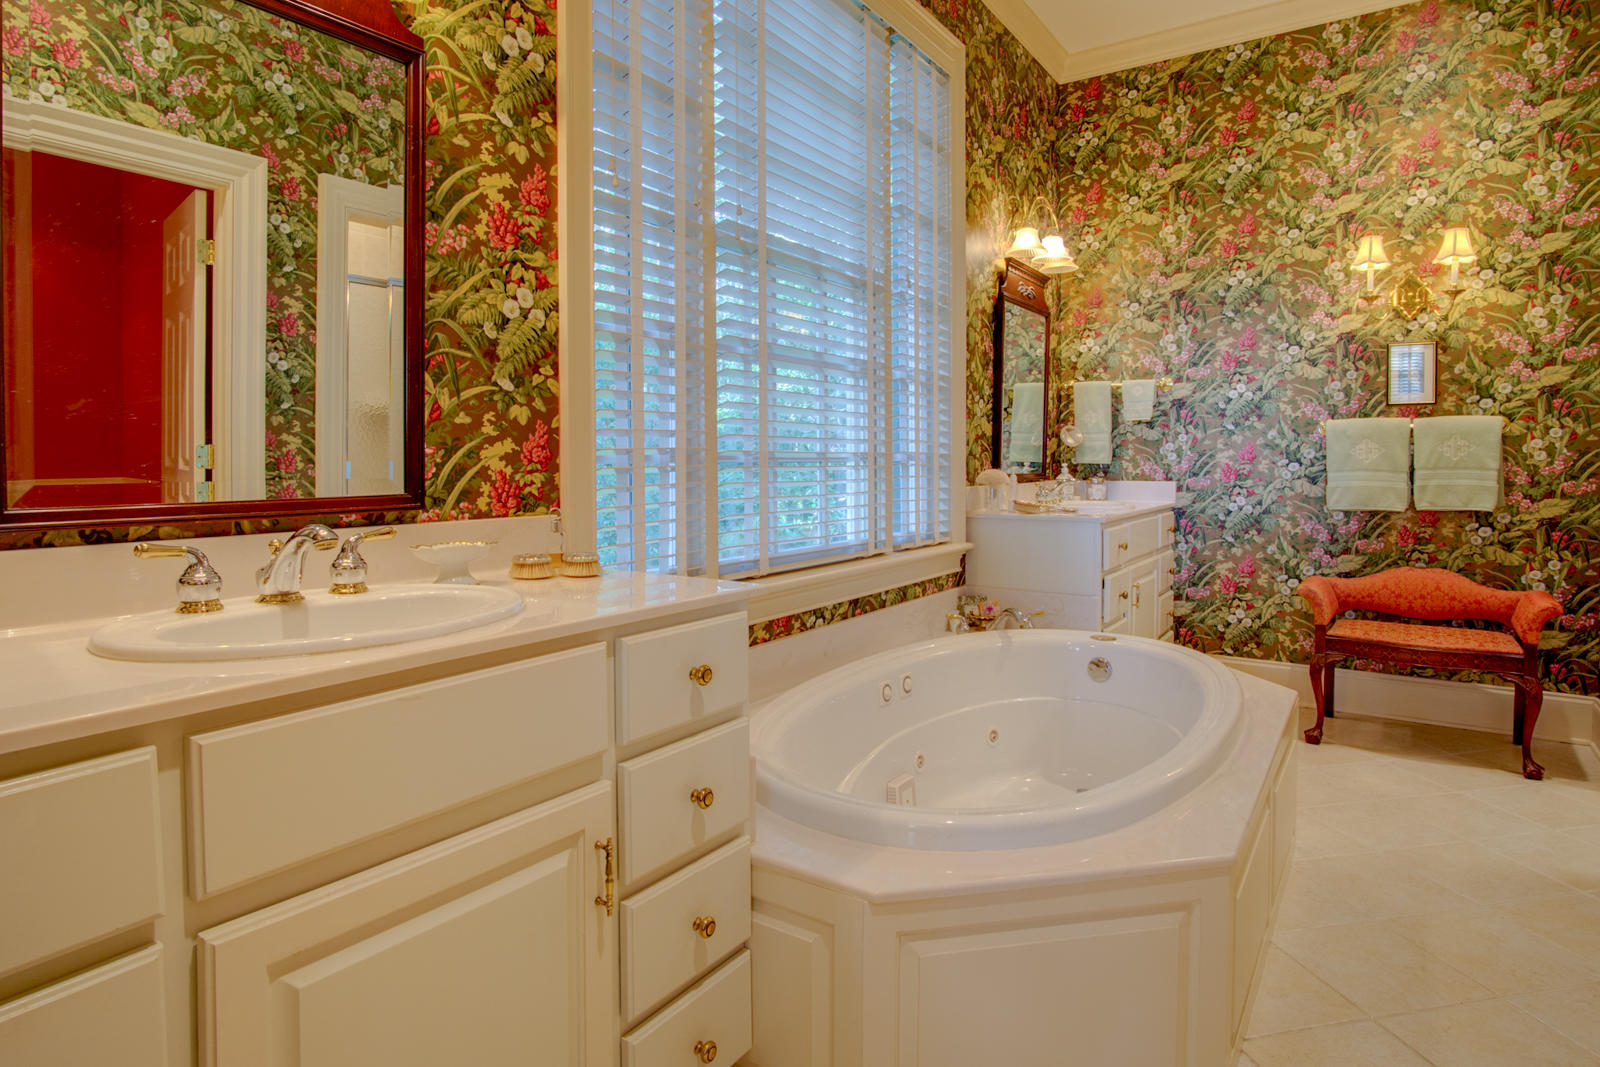 Bull Point Plantation Homes For Sale - 123 Bull Point, Seabrook, SC - 44